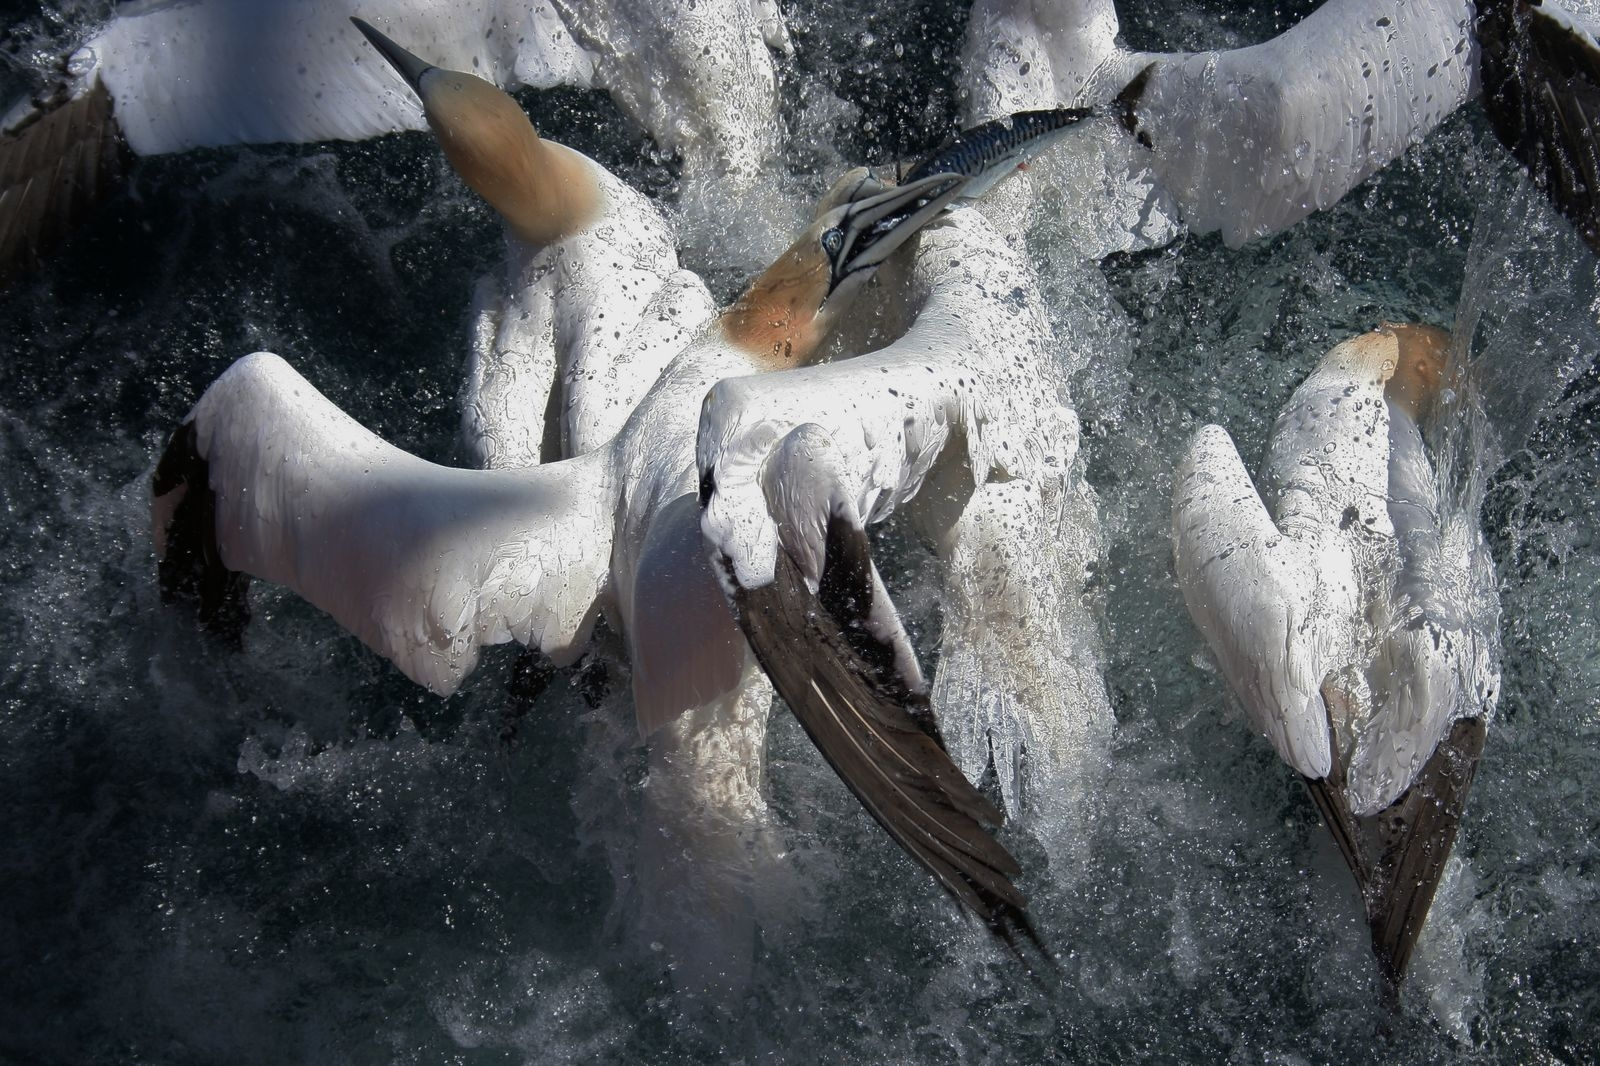 Photograph by Joel Woods, National Geographic Your Shot